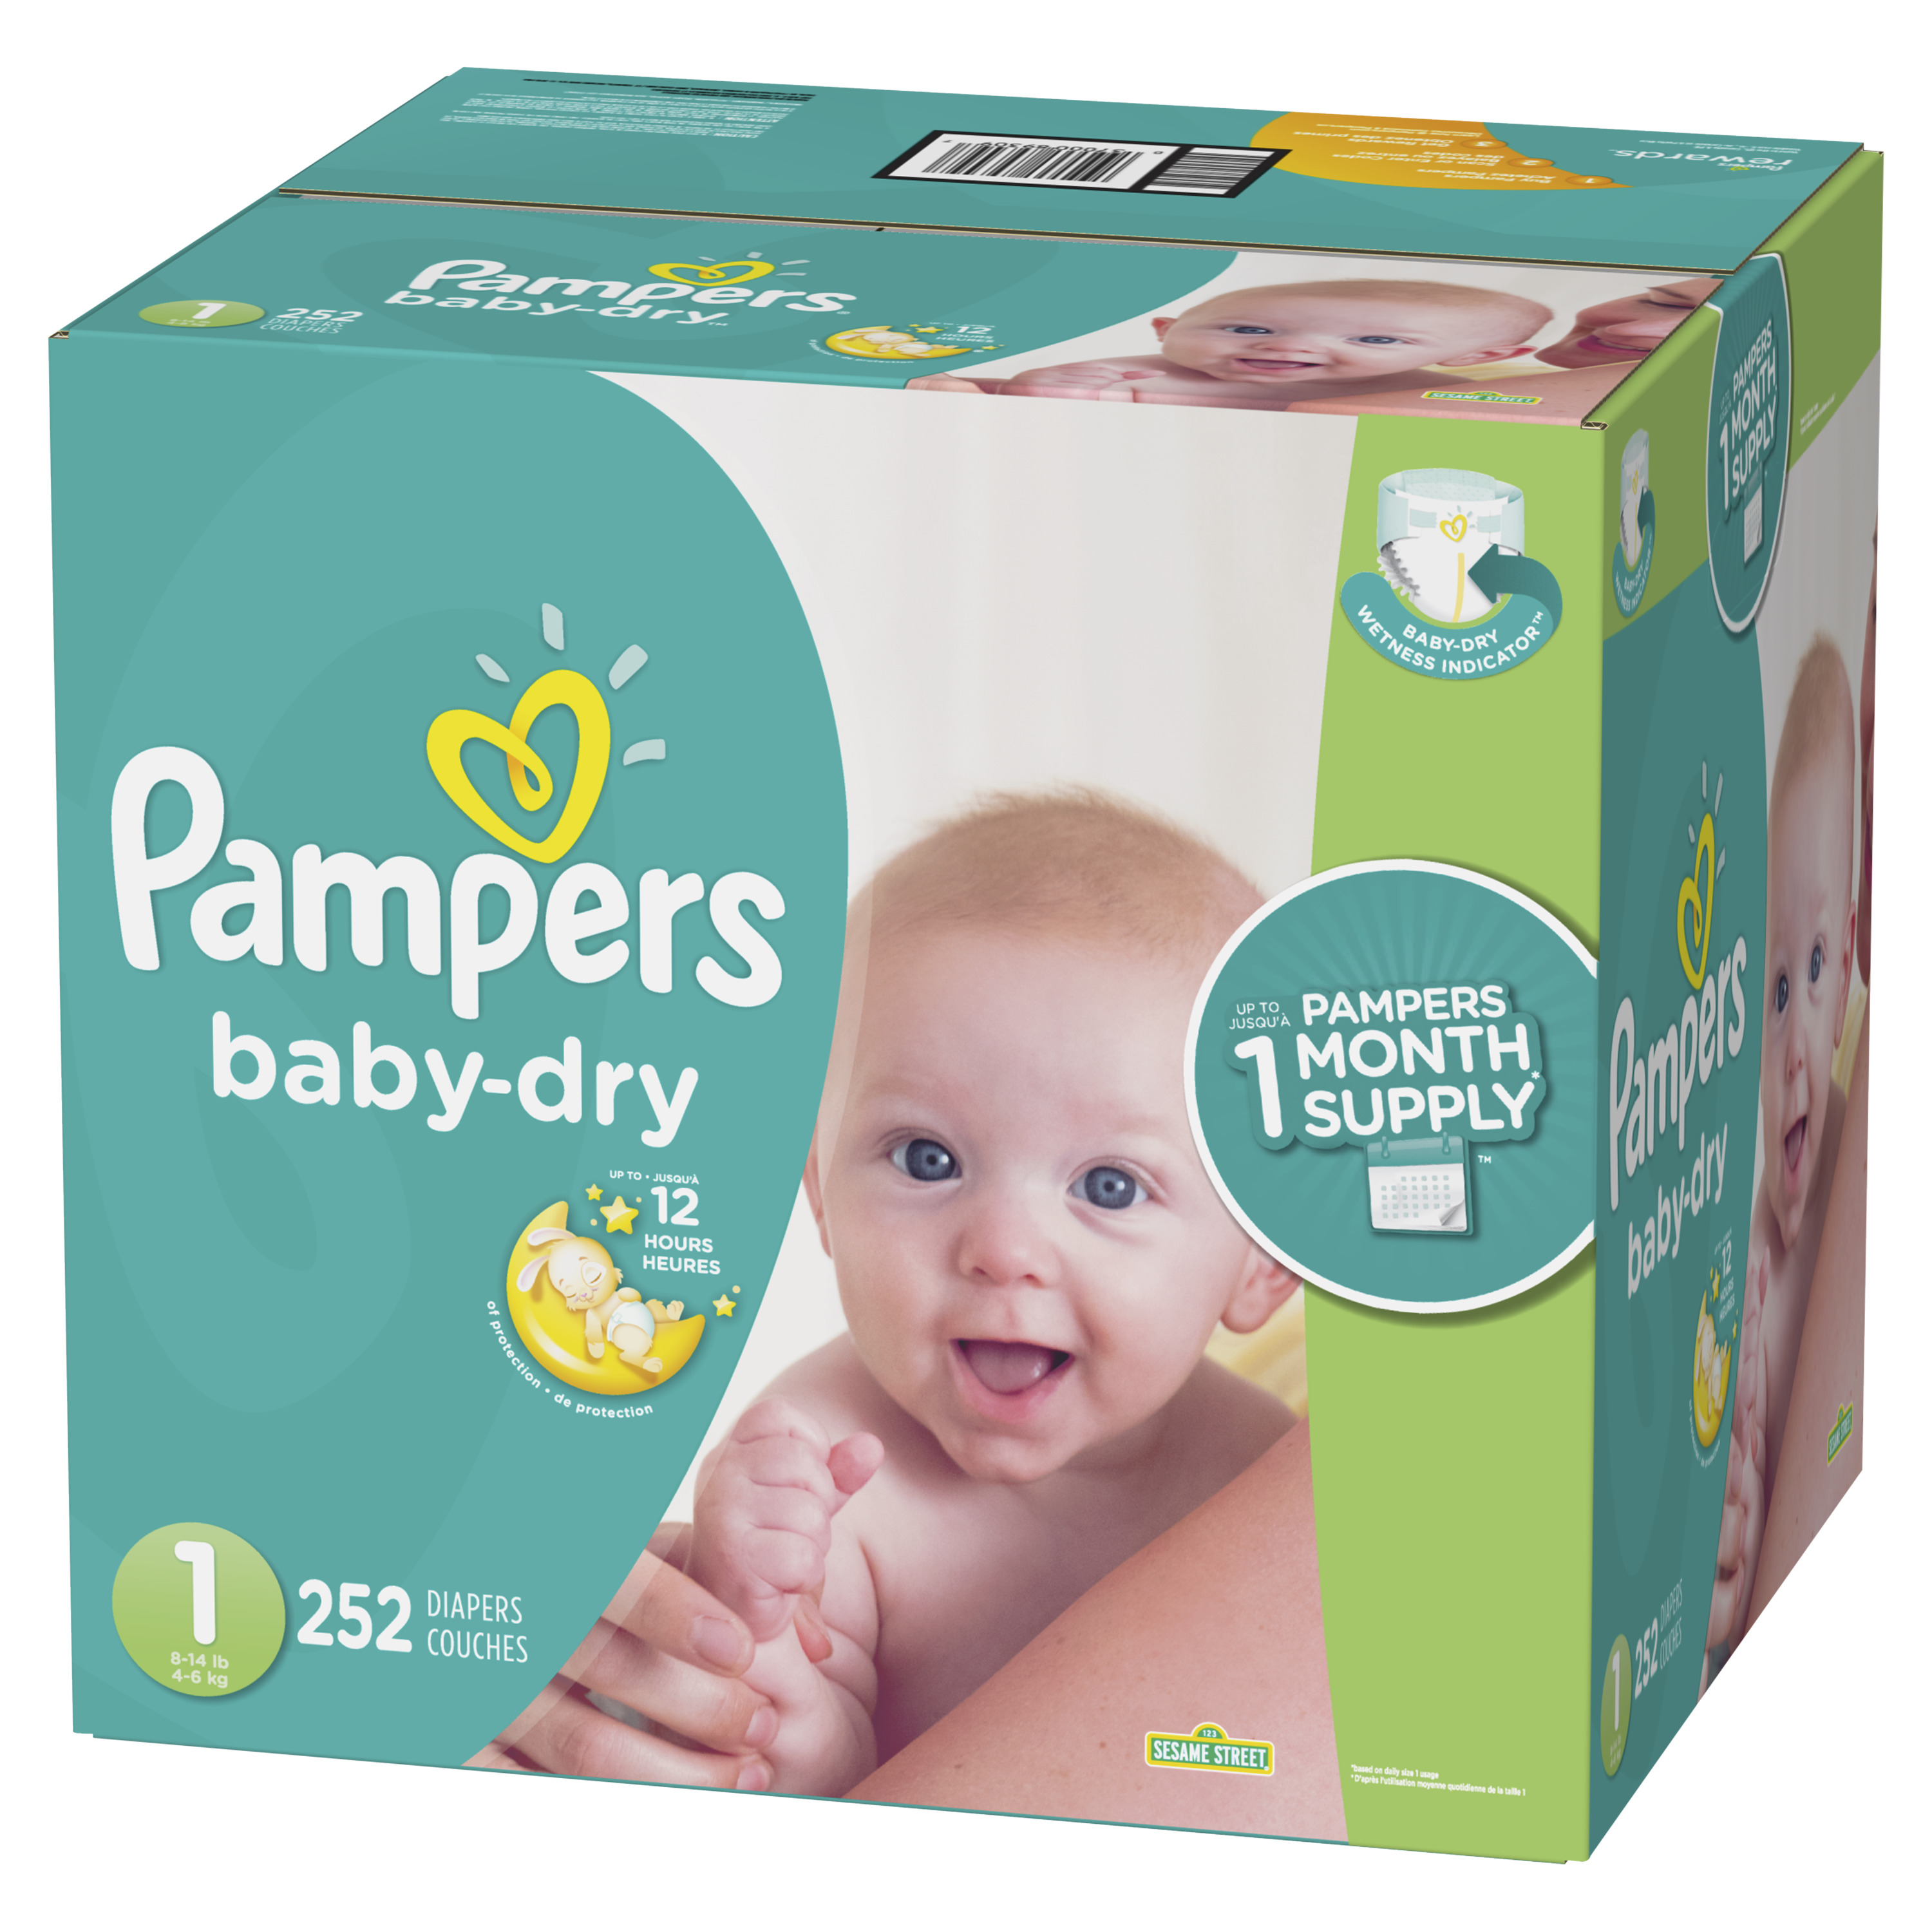 Pampers Baby-Dry Diapers Size 1 252 Count by Pampers